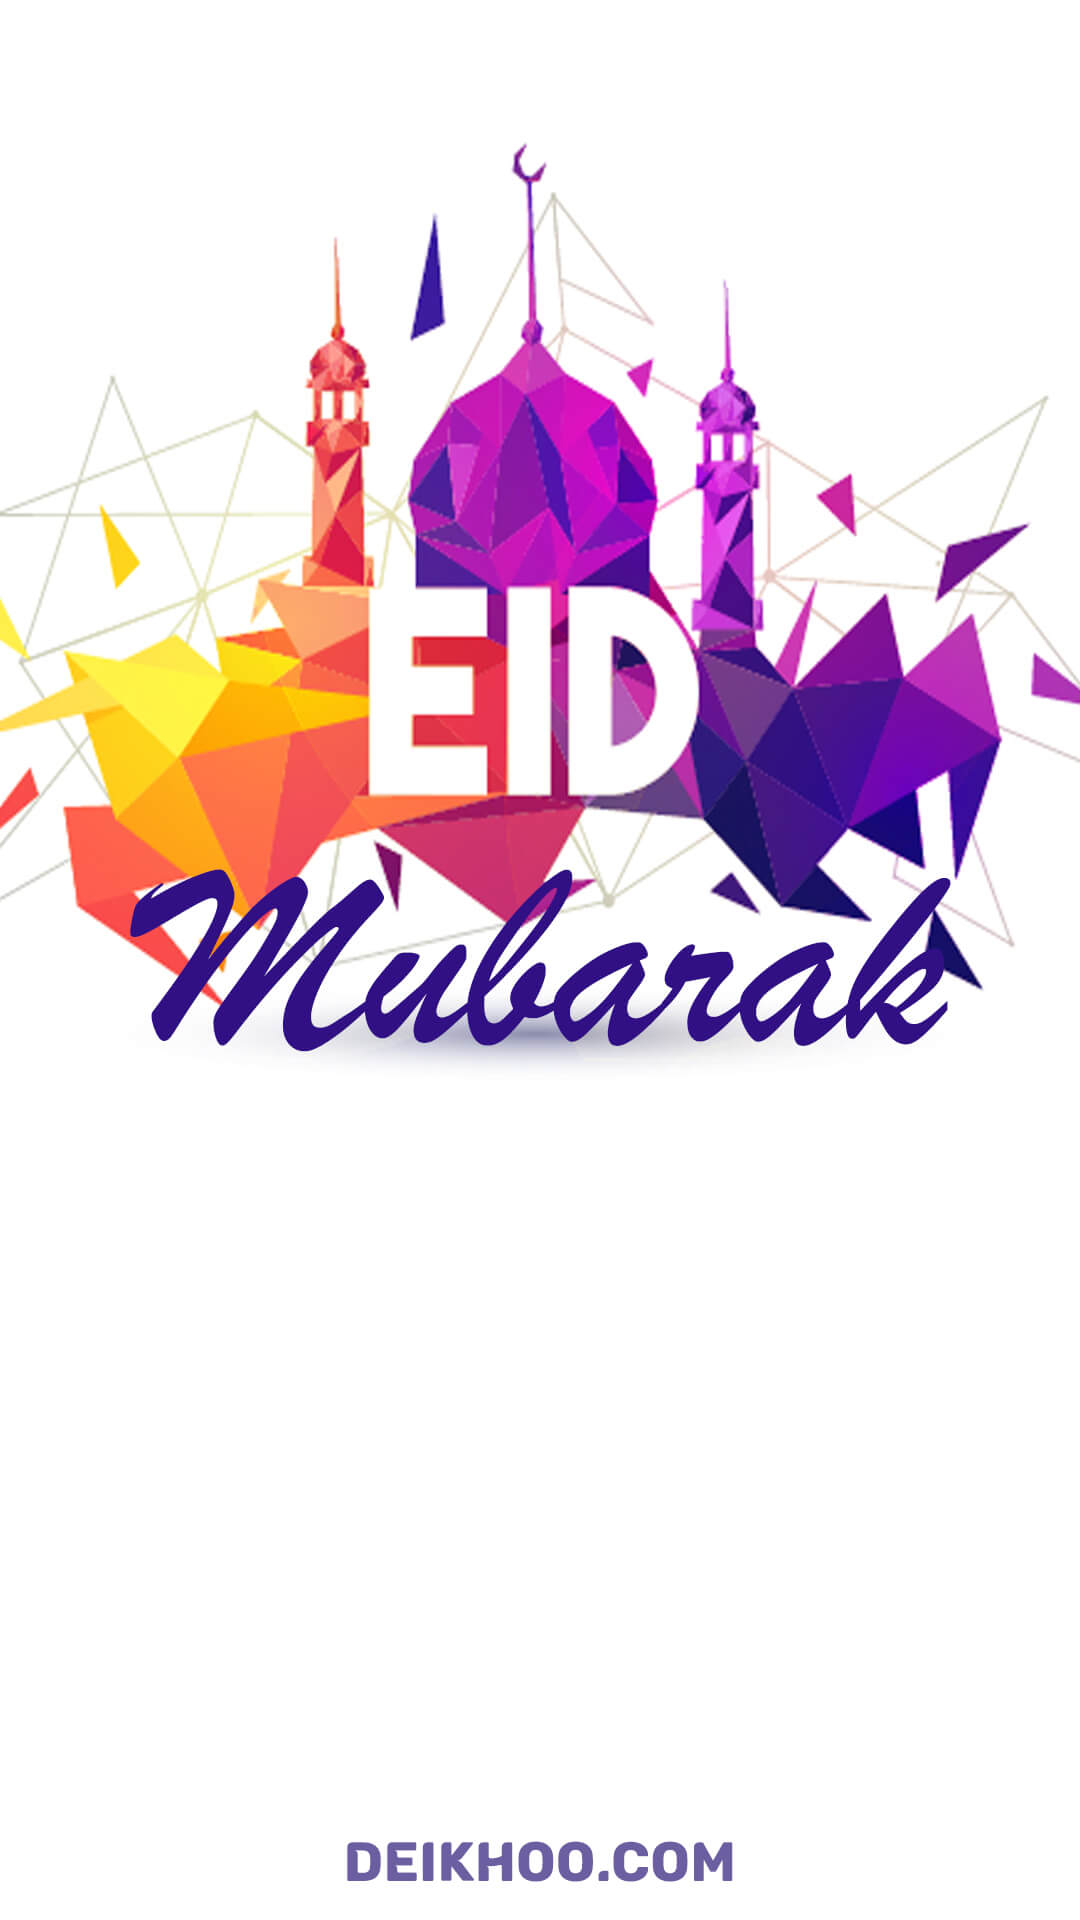 Eid Mubarak to all friends